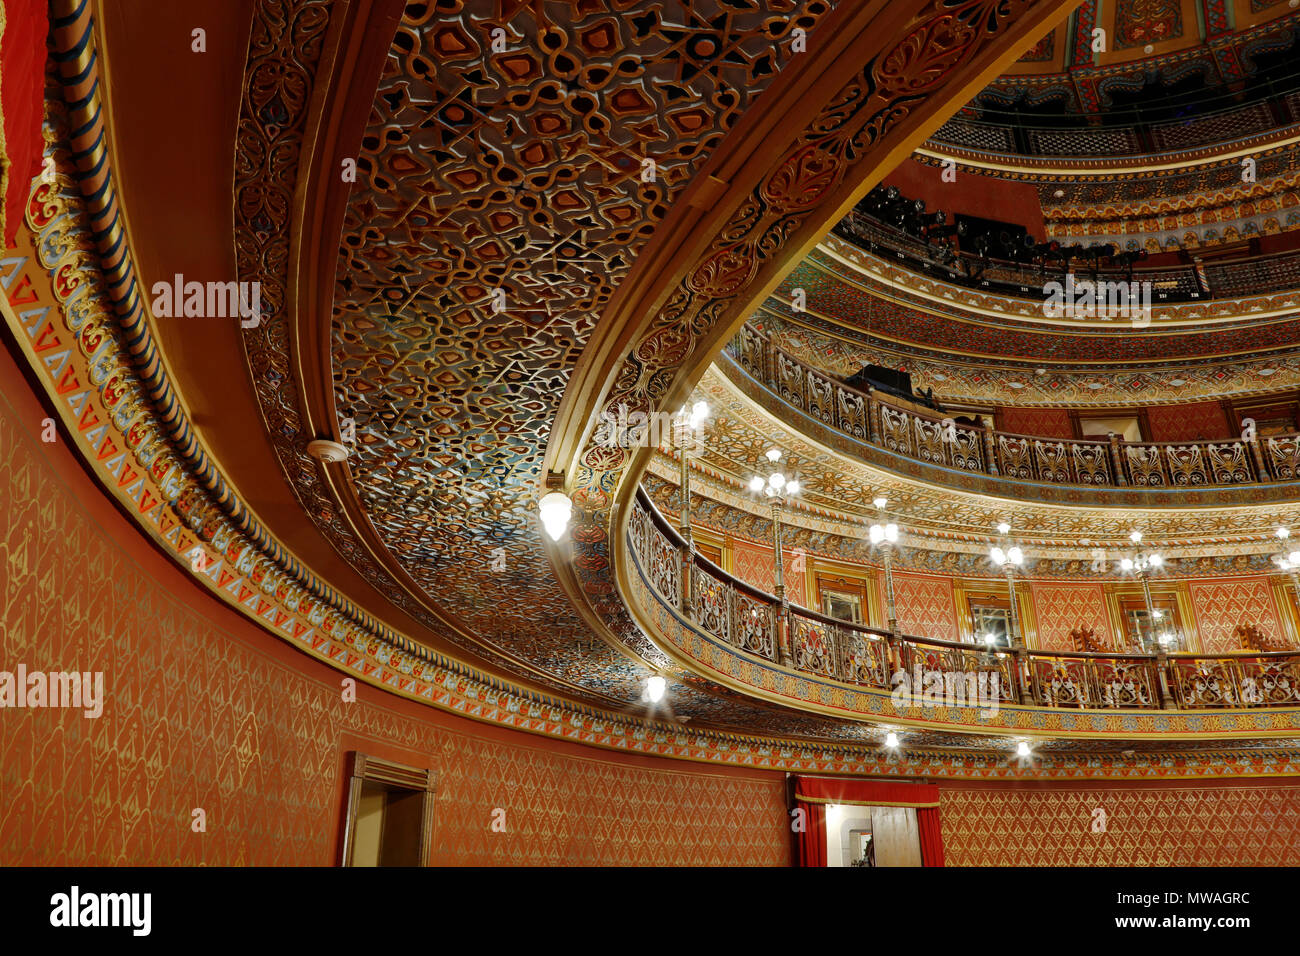 Interior of the JUAREZ THEATER - GUANAJUATO, MEXICO Stock Photo